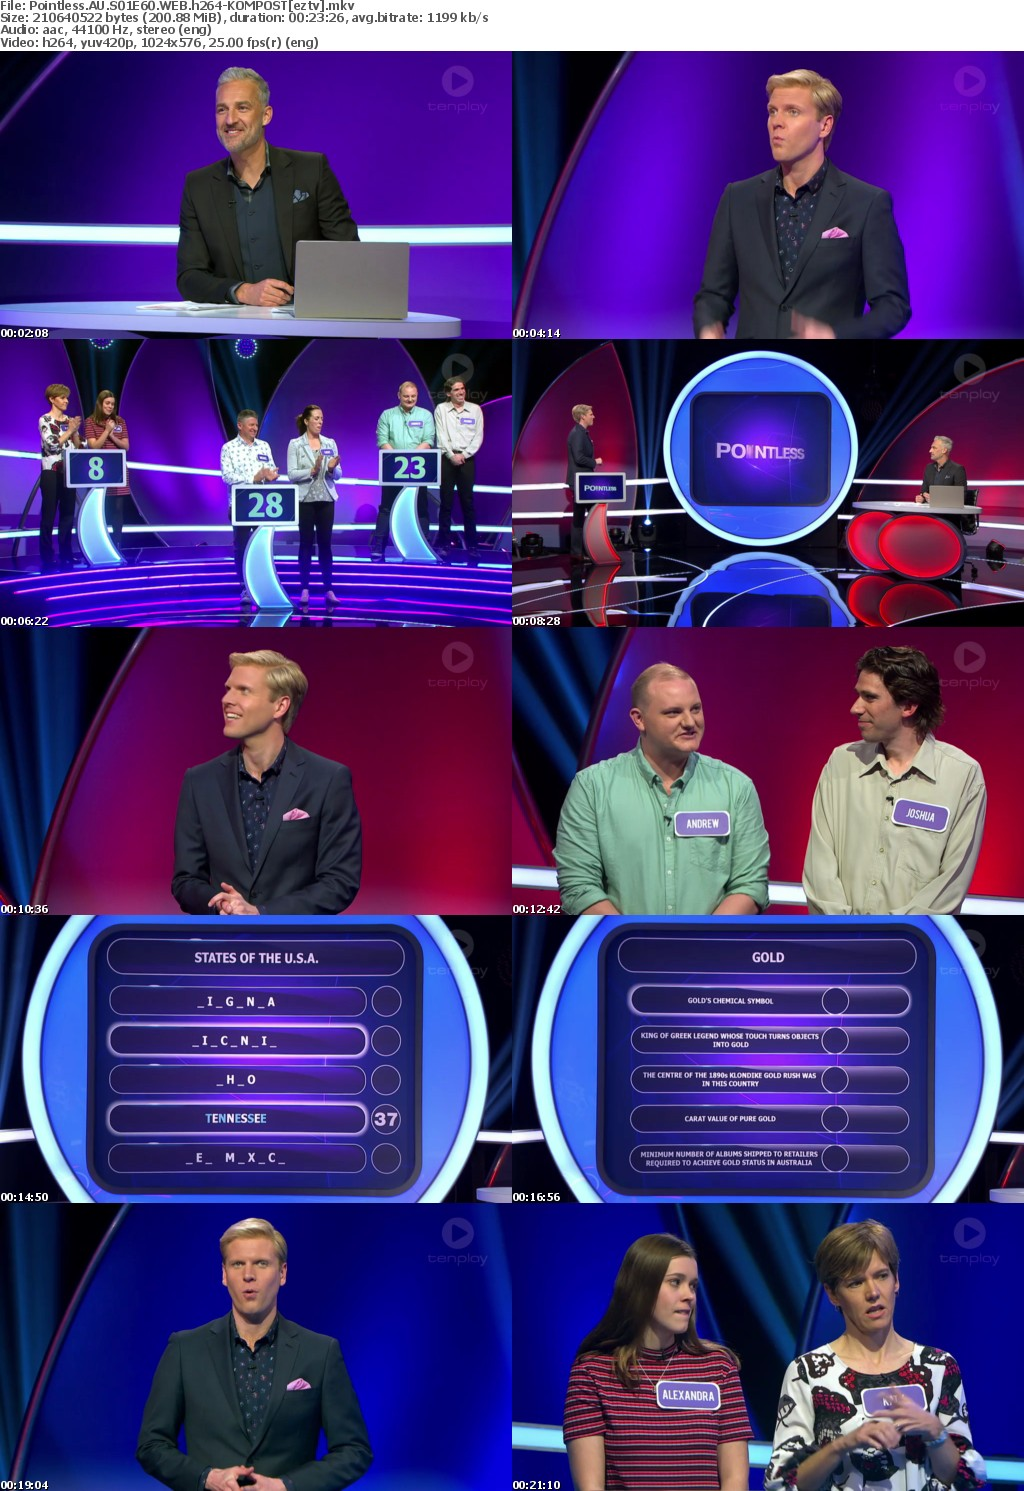 Pointless AU S01E60 WEB h264-KOMPOST